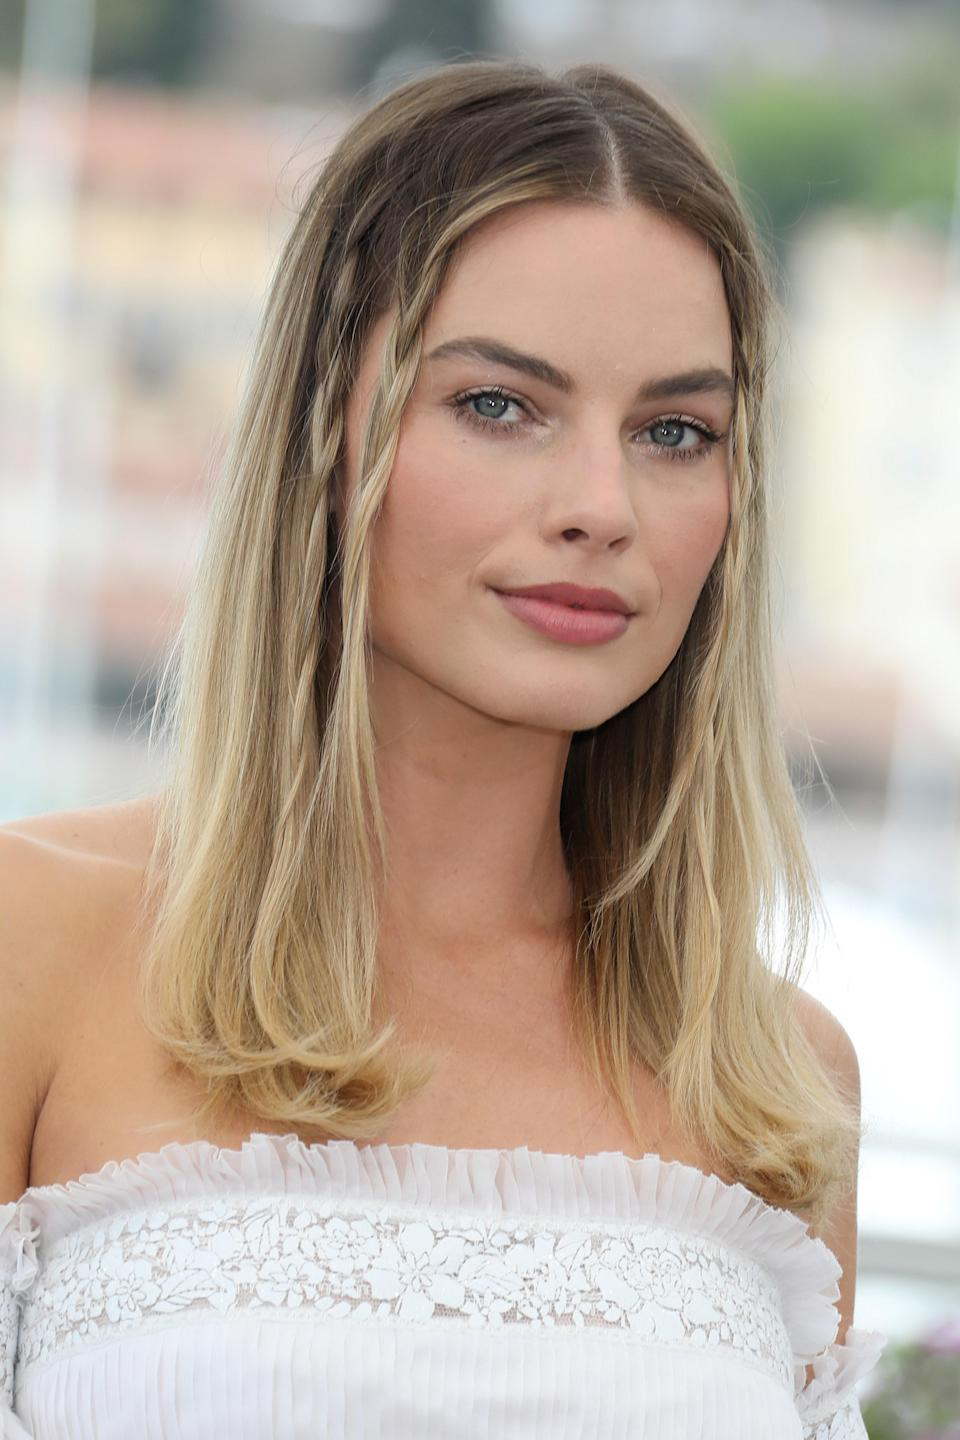 """Multiple braids like Margot Robbie's, here, have a more '70s feel, or you can go for just one on each side for '90s vibes. Moroccanoil celebrity stylist <a href=""""https://www.thewallgroup.com/artist/bryce-scarlett"""" rel=""""nofollow noopener"""" target=""""_blank"""" data-ylk=""""slk:Bryce Scarlett"""" class=""""link rapid-noclick-resp"""">Bryce Scarlett</a>, who did this Sharon Tate–inspired look on Robbie, says the key to keeping it current is by not being too precious with the style. To get a similar look at home, skip the hair ties, and saturate the end of your braids with hairspray (he likes <a href=""""https://shop-links.co/1709290983046944131"""" rel=""""nofollow noopener"""" target=""""_blank"""" data-ylk=""""slk:Moroccanoil Luminous Hairspray Strong"""" class=""""link rapid-noclick-resp"""">Moroccanoil Luminous Hairspray Strong</a>). Clip the ends while the hairspray is drying (<a href=""""https://shop-links.co/1710323835641021551"""" rel=""""nofollow noopener"""" target=""""_blank"""" data-ylk=""""slk:setting clips like these work best"""" class=""""link rapid-noclick-resp"""">setting clips like these work best</a>), and then remove them right before you head out the door."""